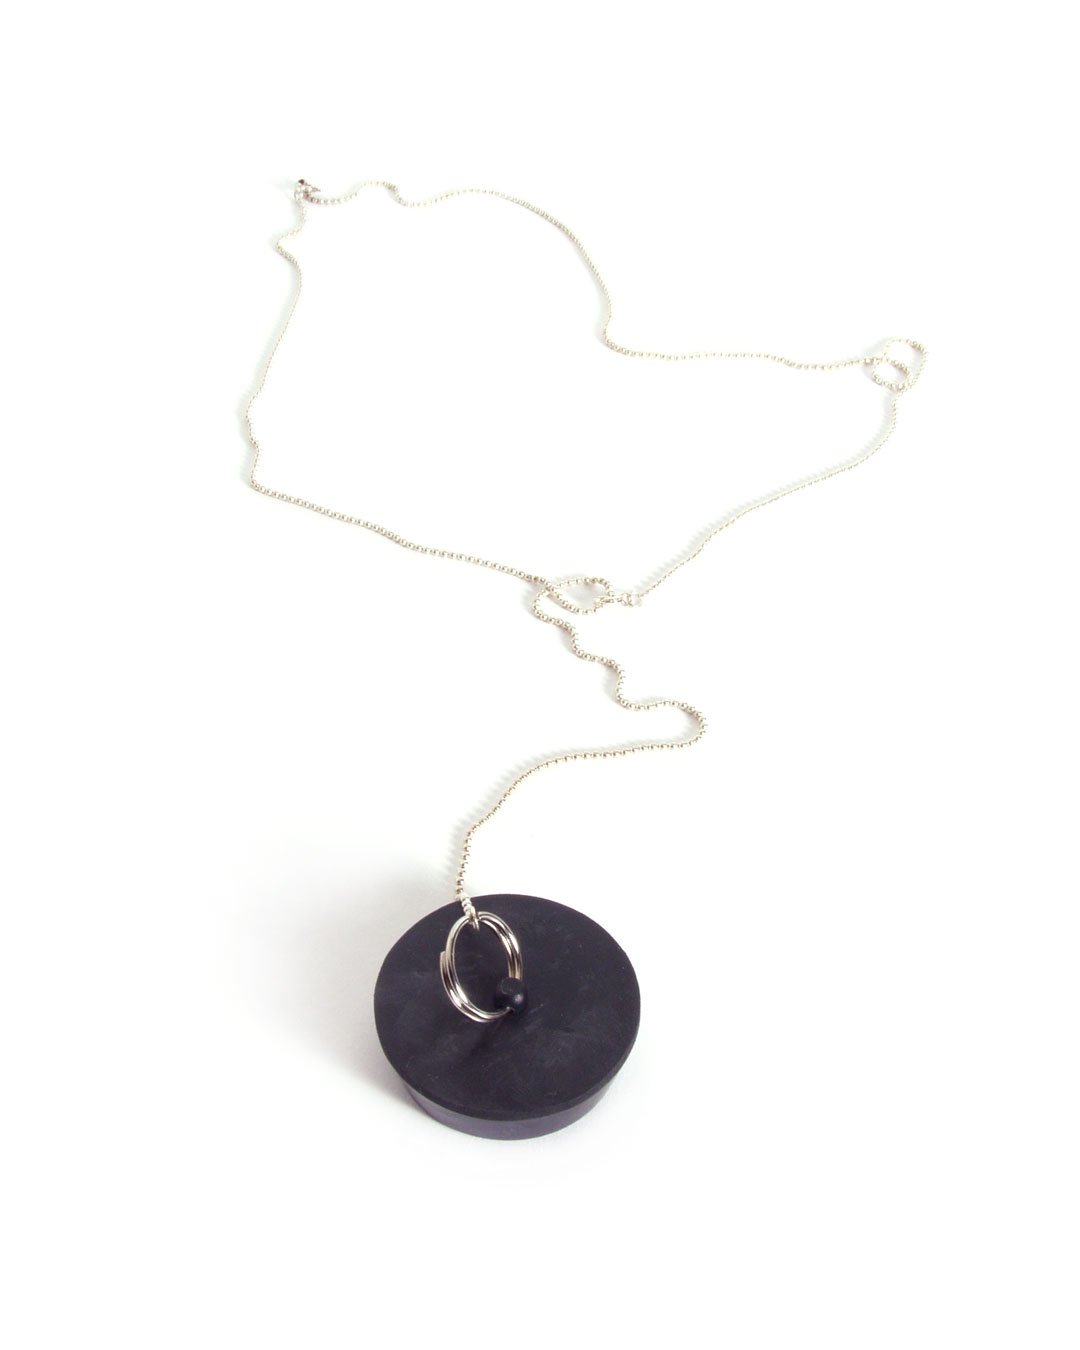 Hilde De Decker, untitled, 1996, pendant; silver, rubber, element ø 40 x 13 mm; L 630 mm, €200